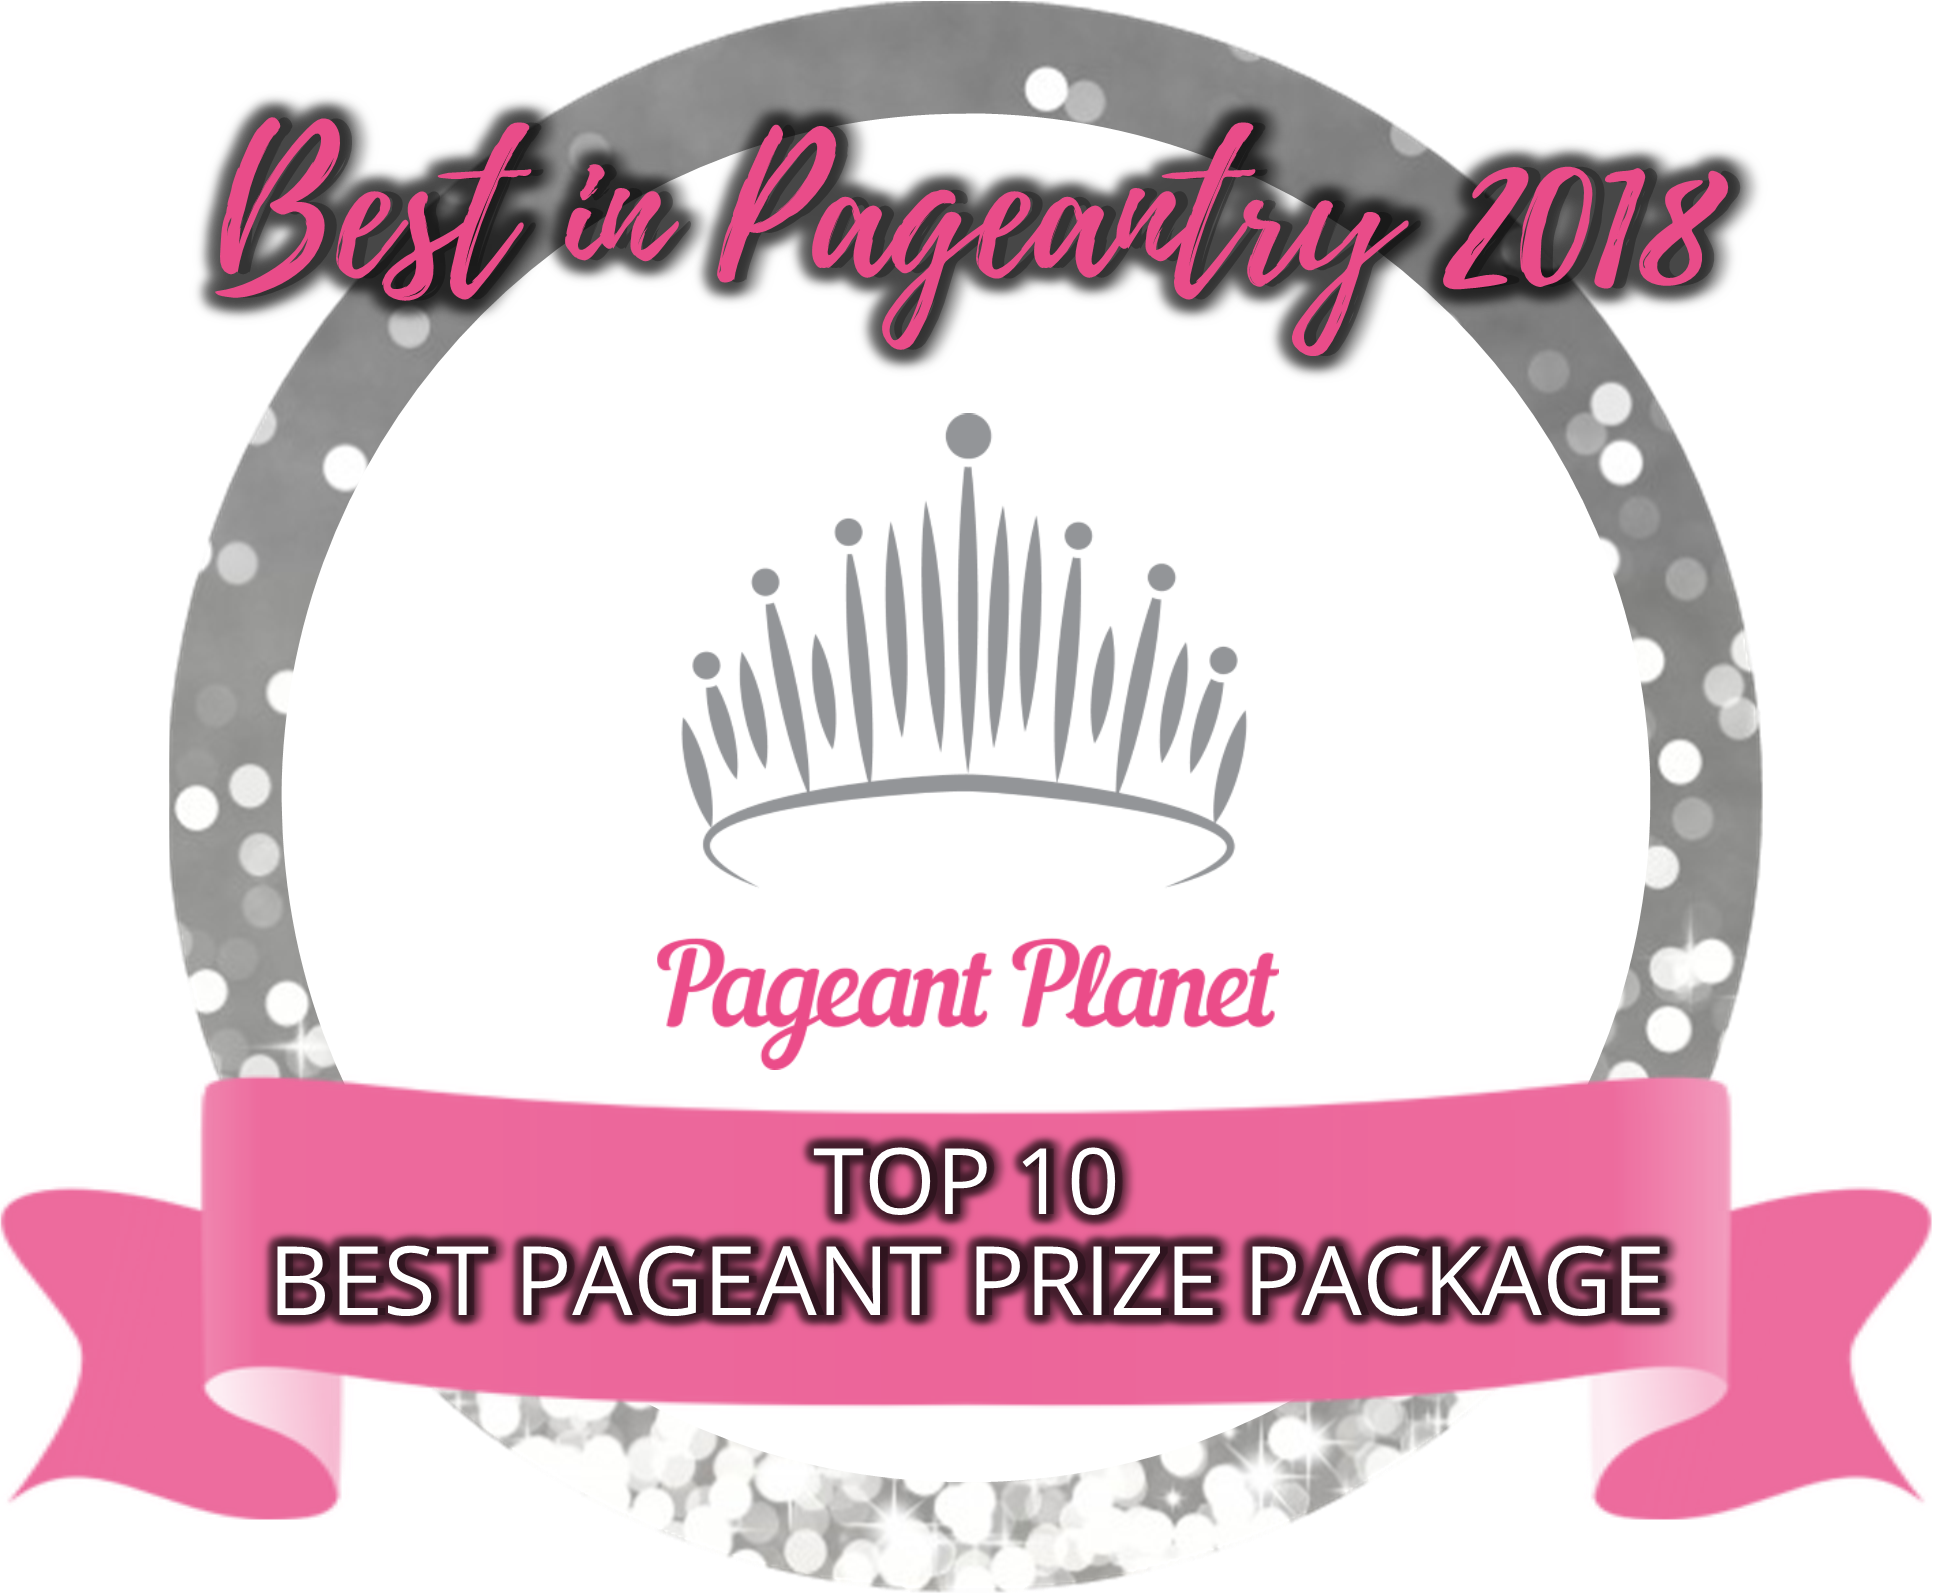 Top 10 Best Pageant Prize Package